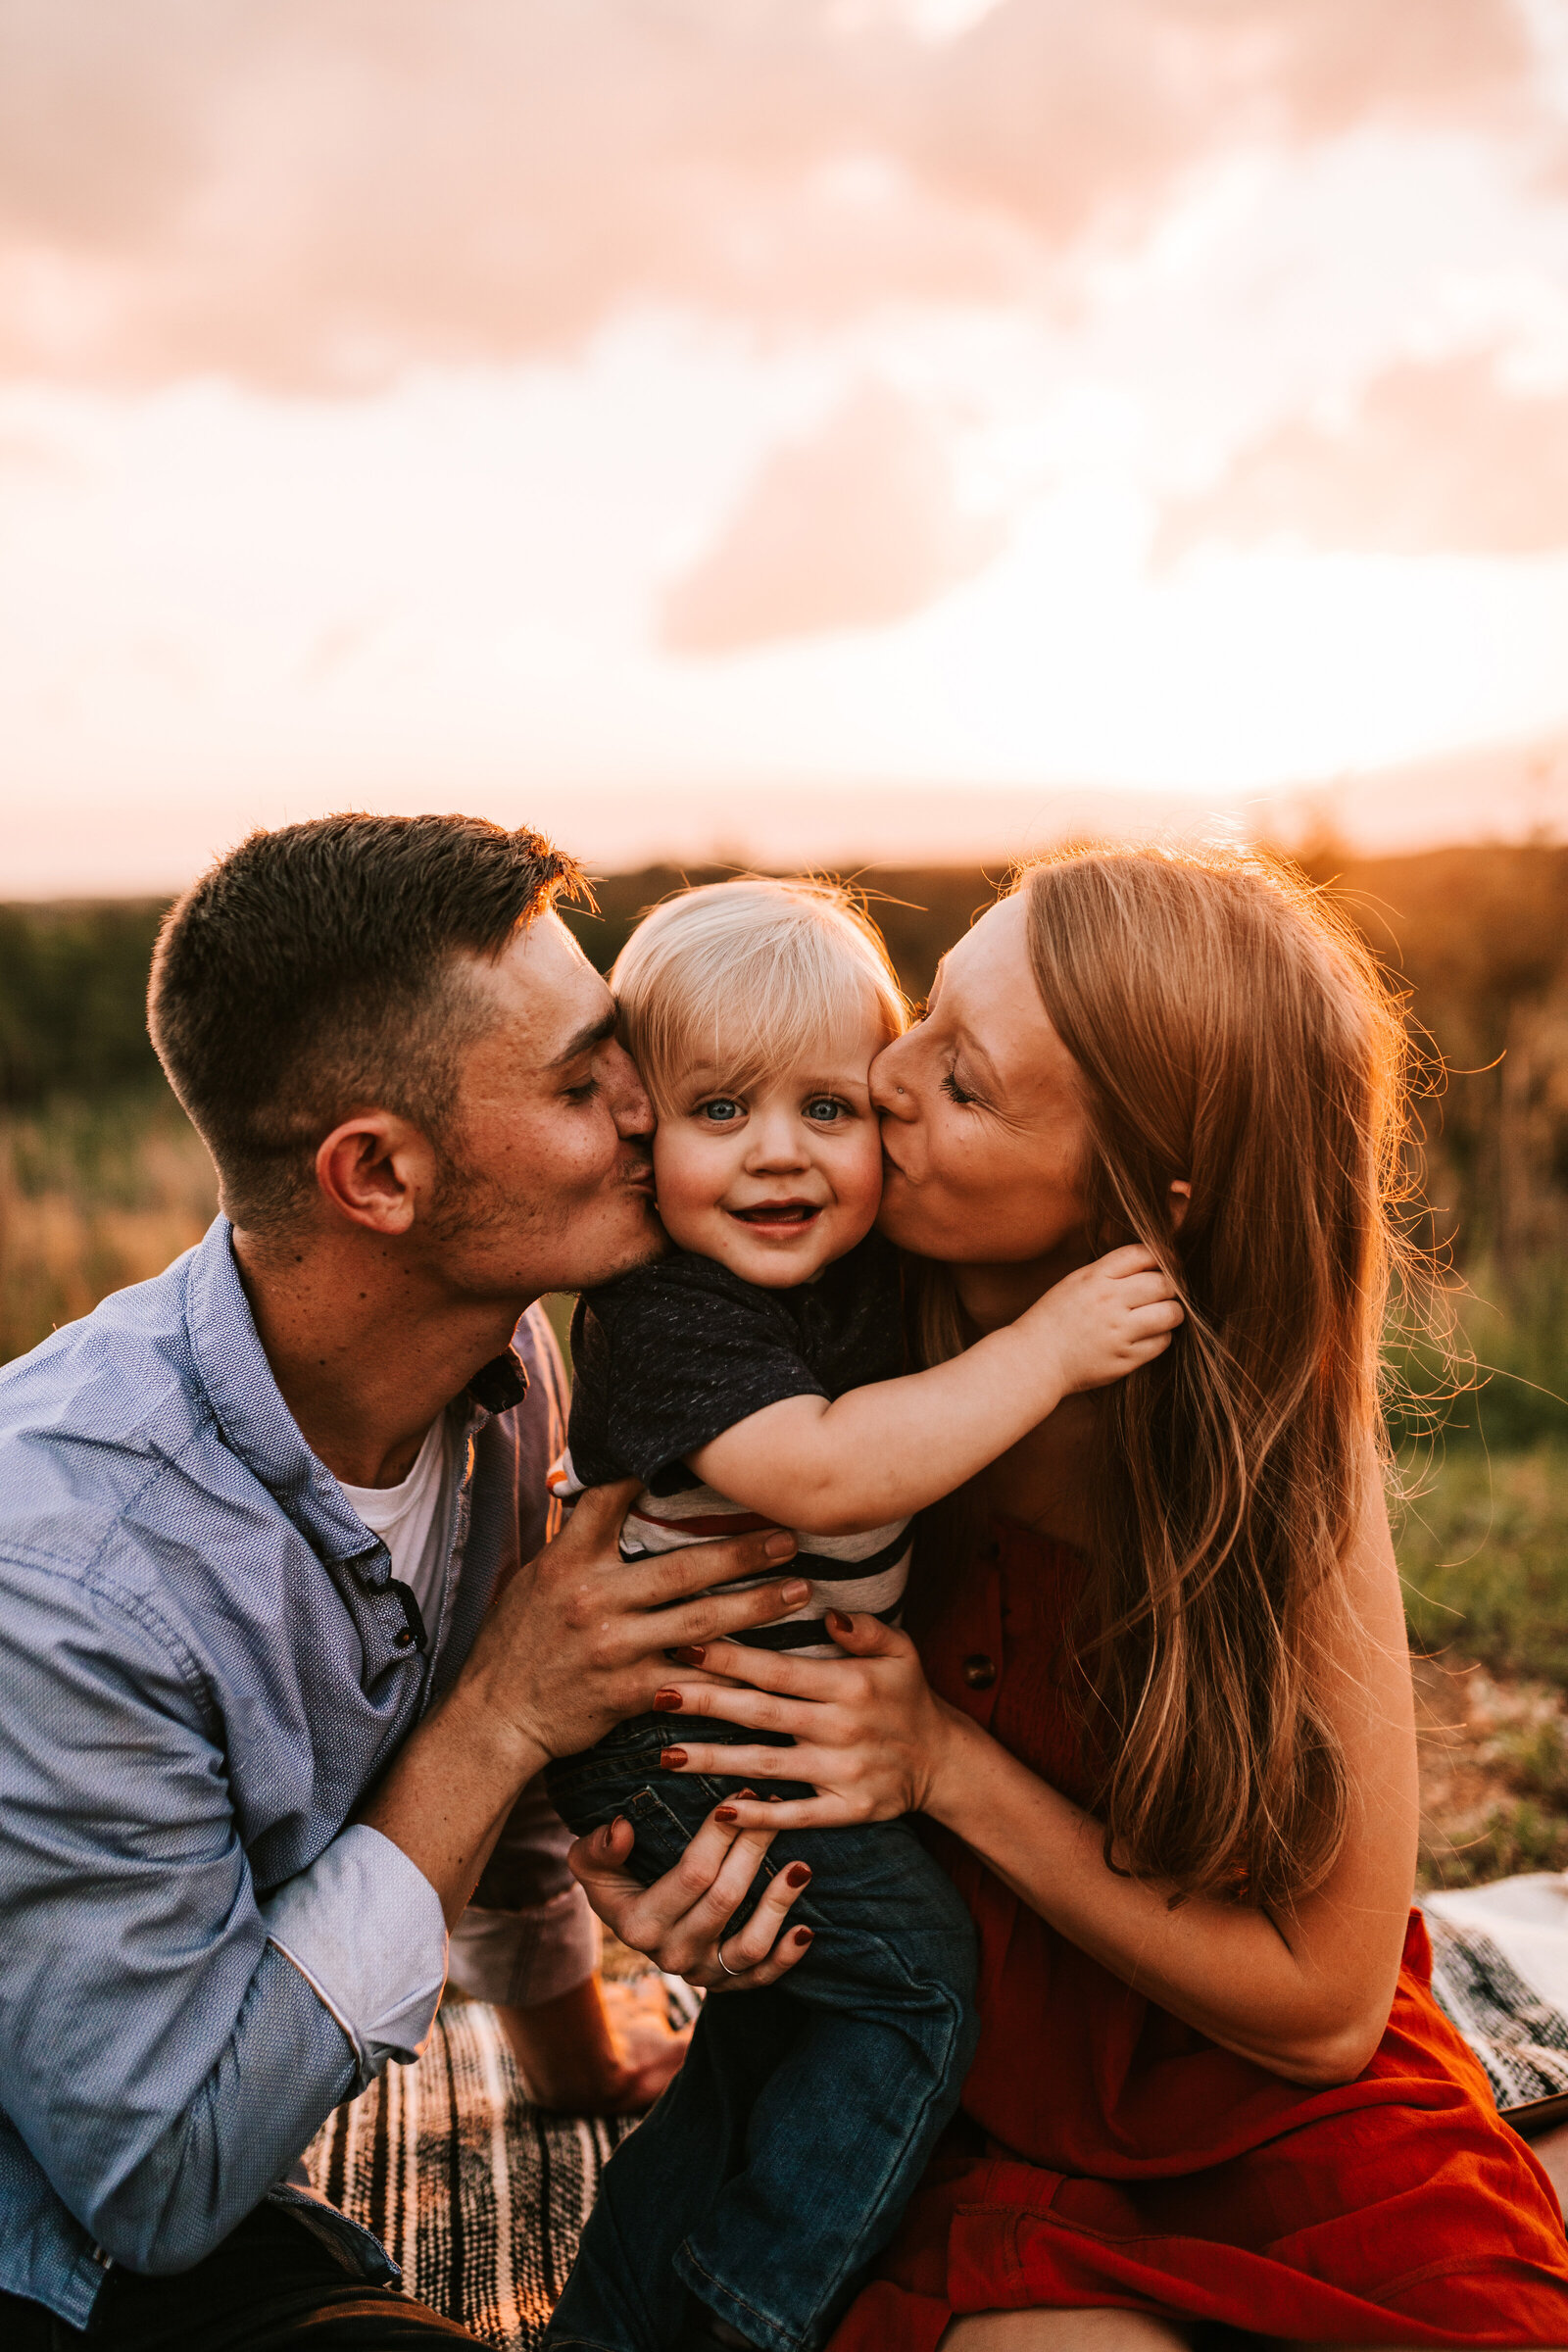 family shoot with mom and dad kissing child with the sunset